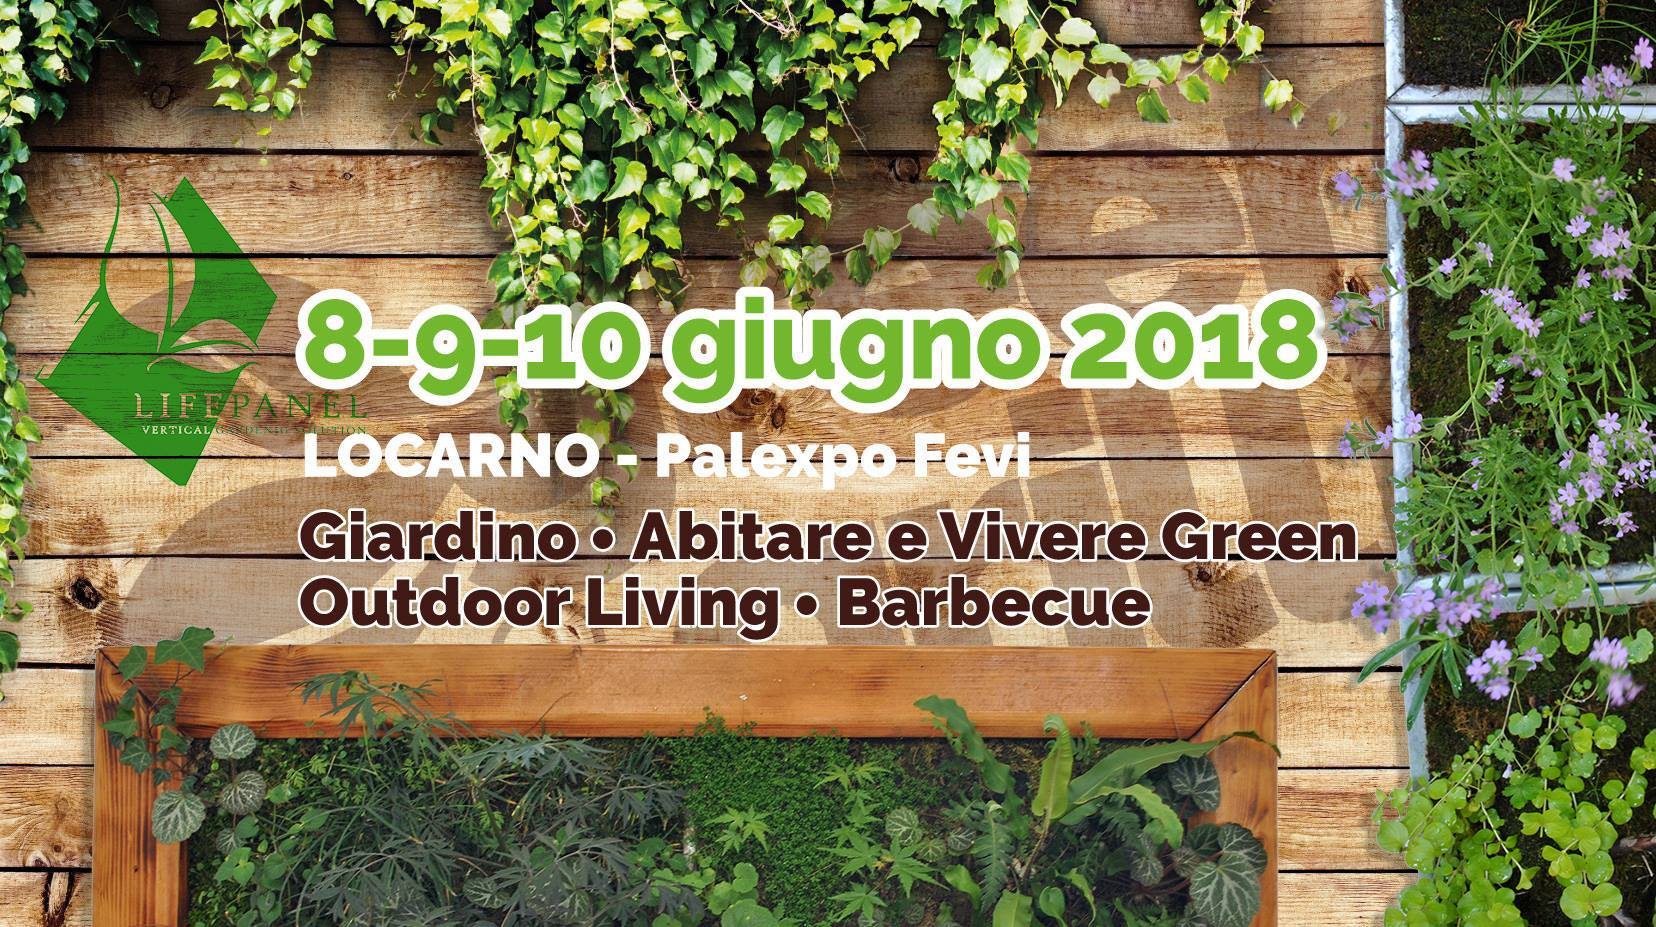 Green & Grill expo 2018